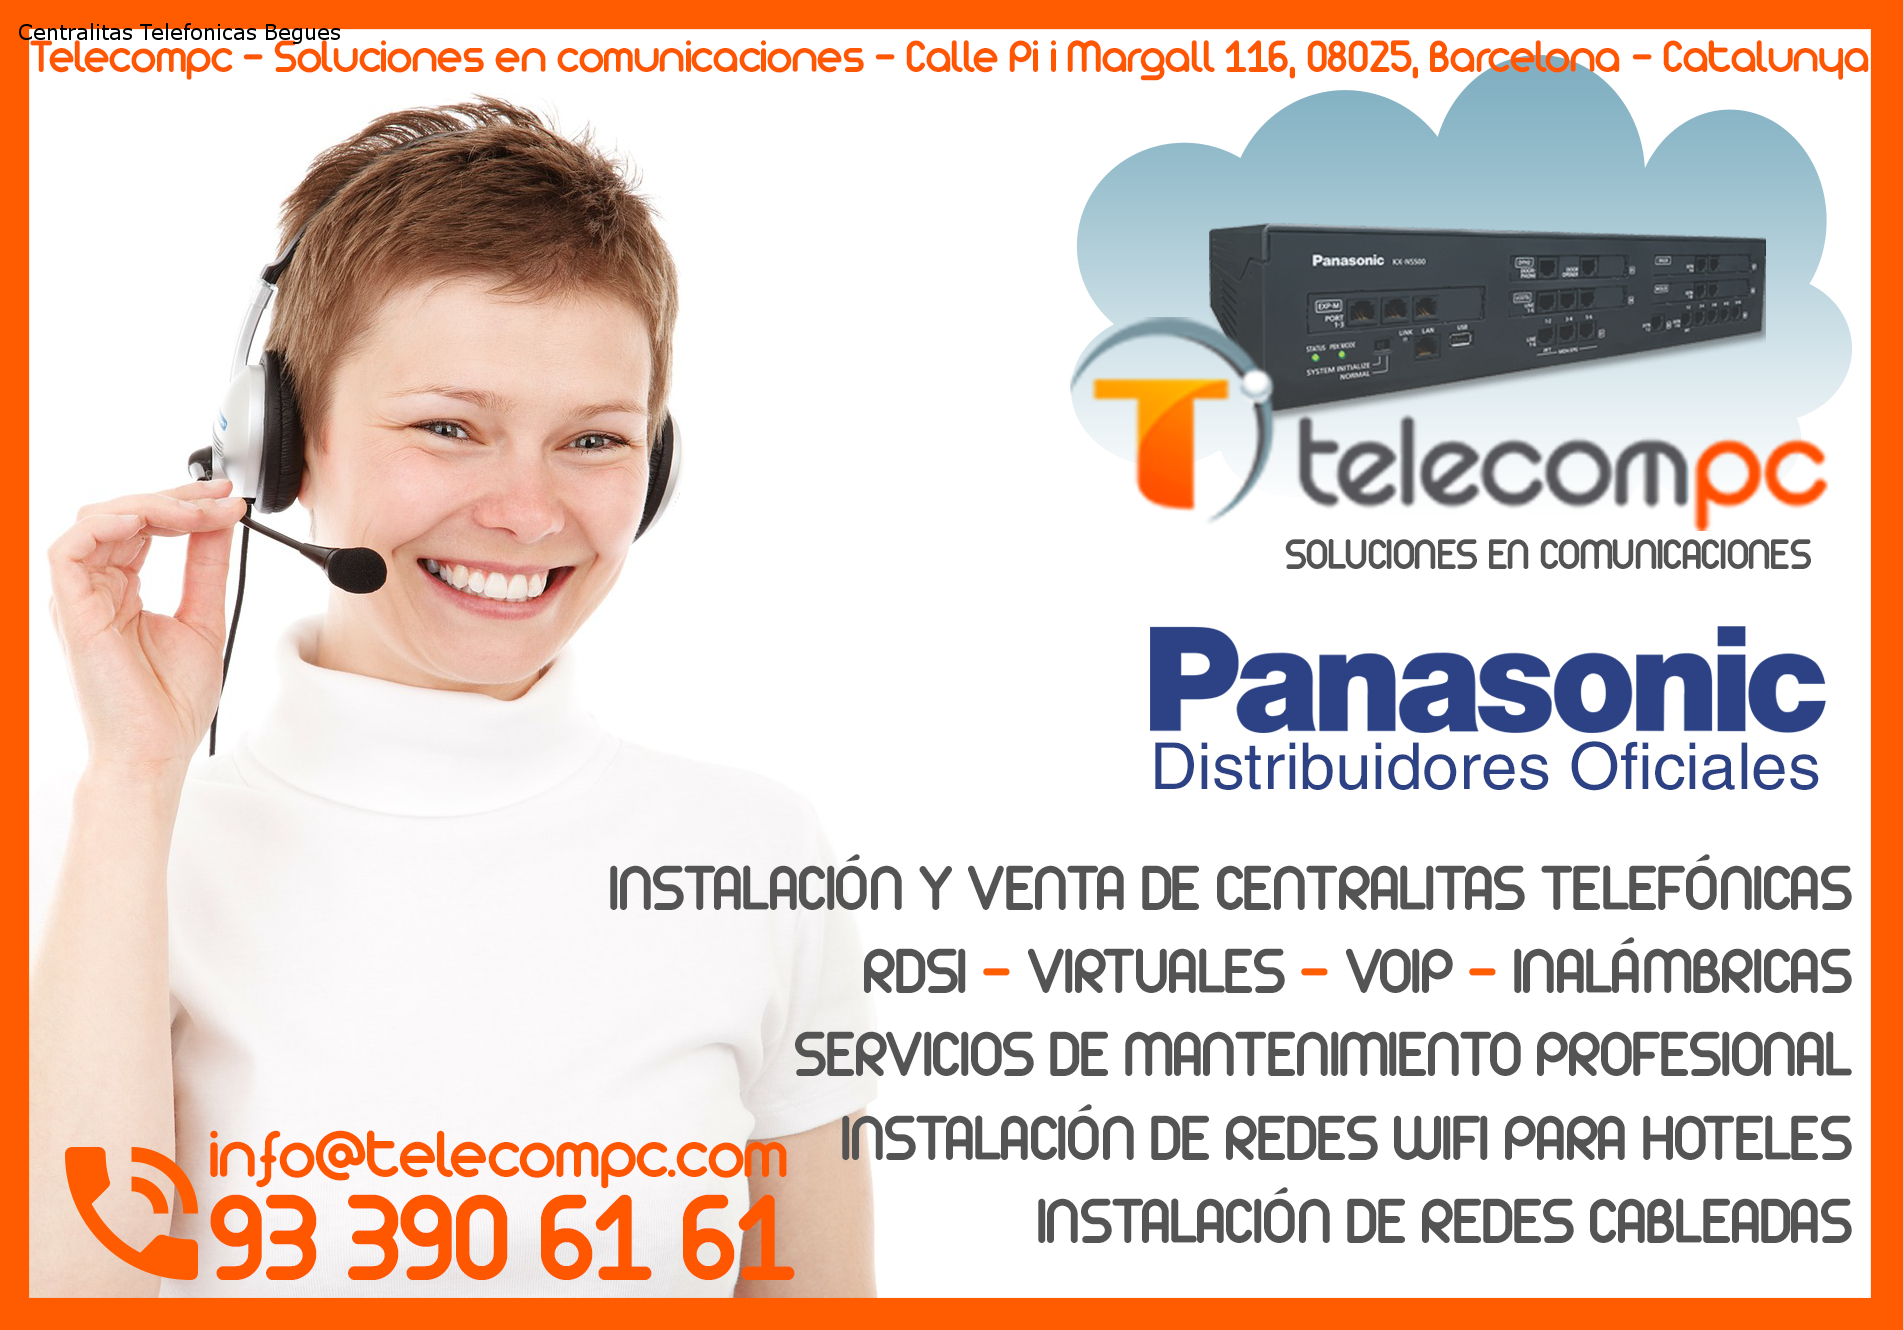 Centralitas Telefonicas Begues